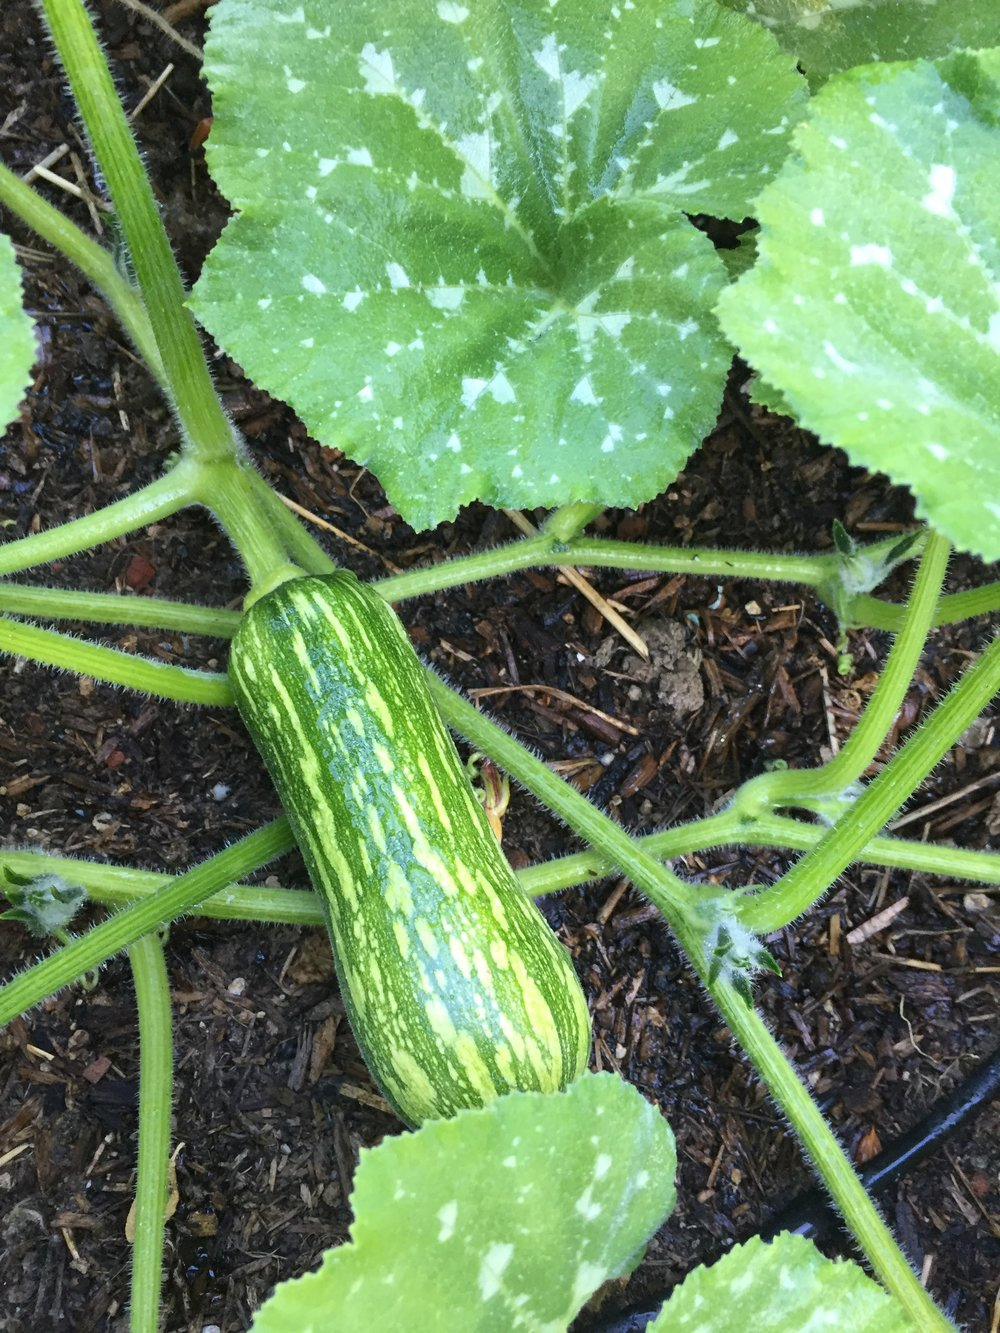 Butternut squash and pumpkins have started fruiting.